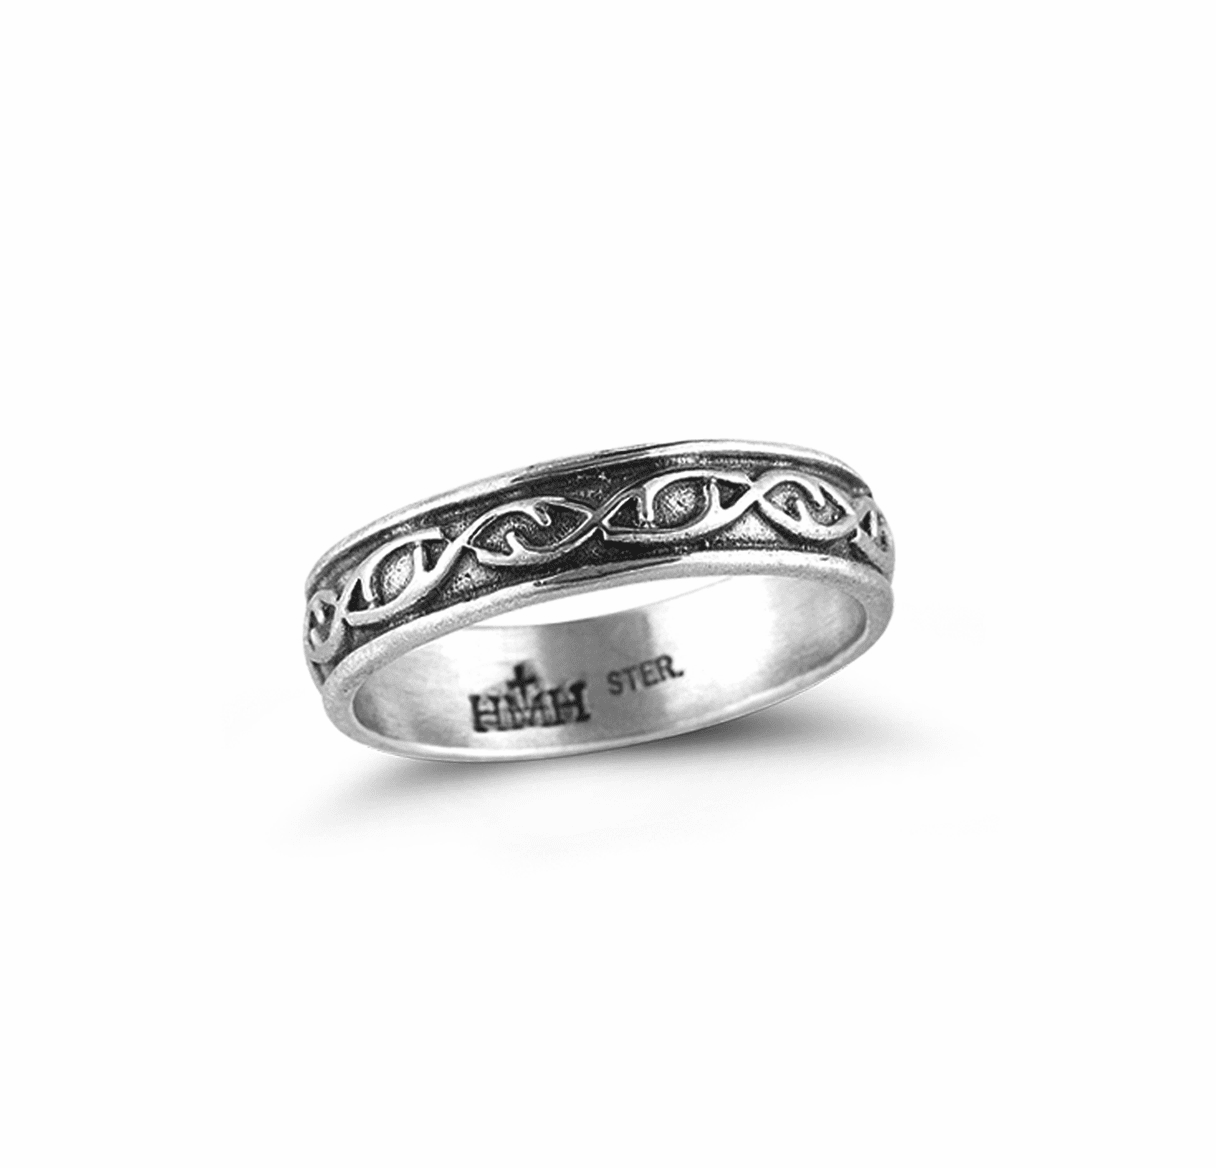 HMH Religious Crown of Thorns Sterling Silver Ring